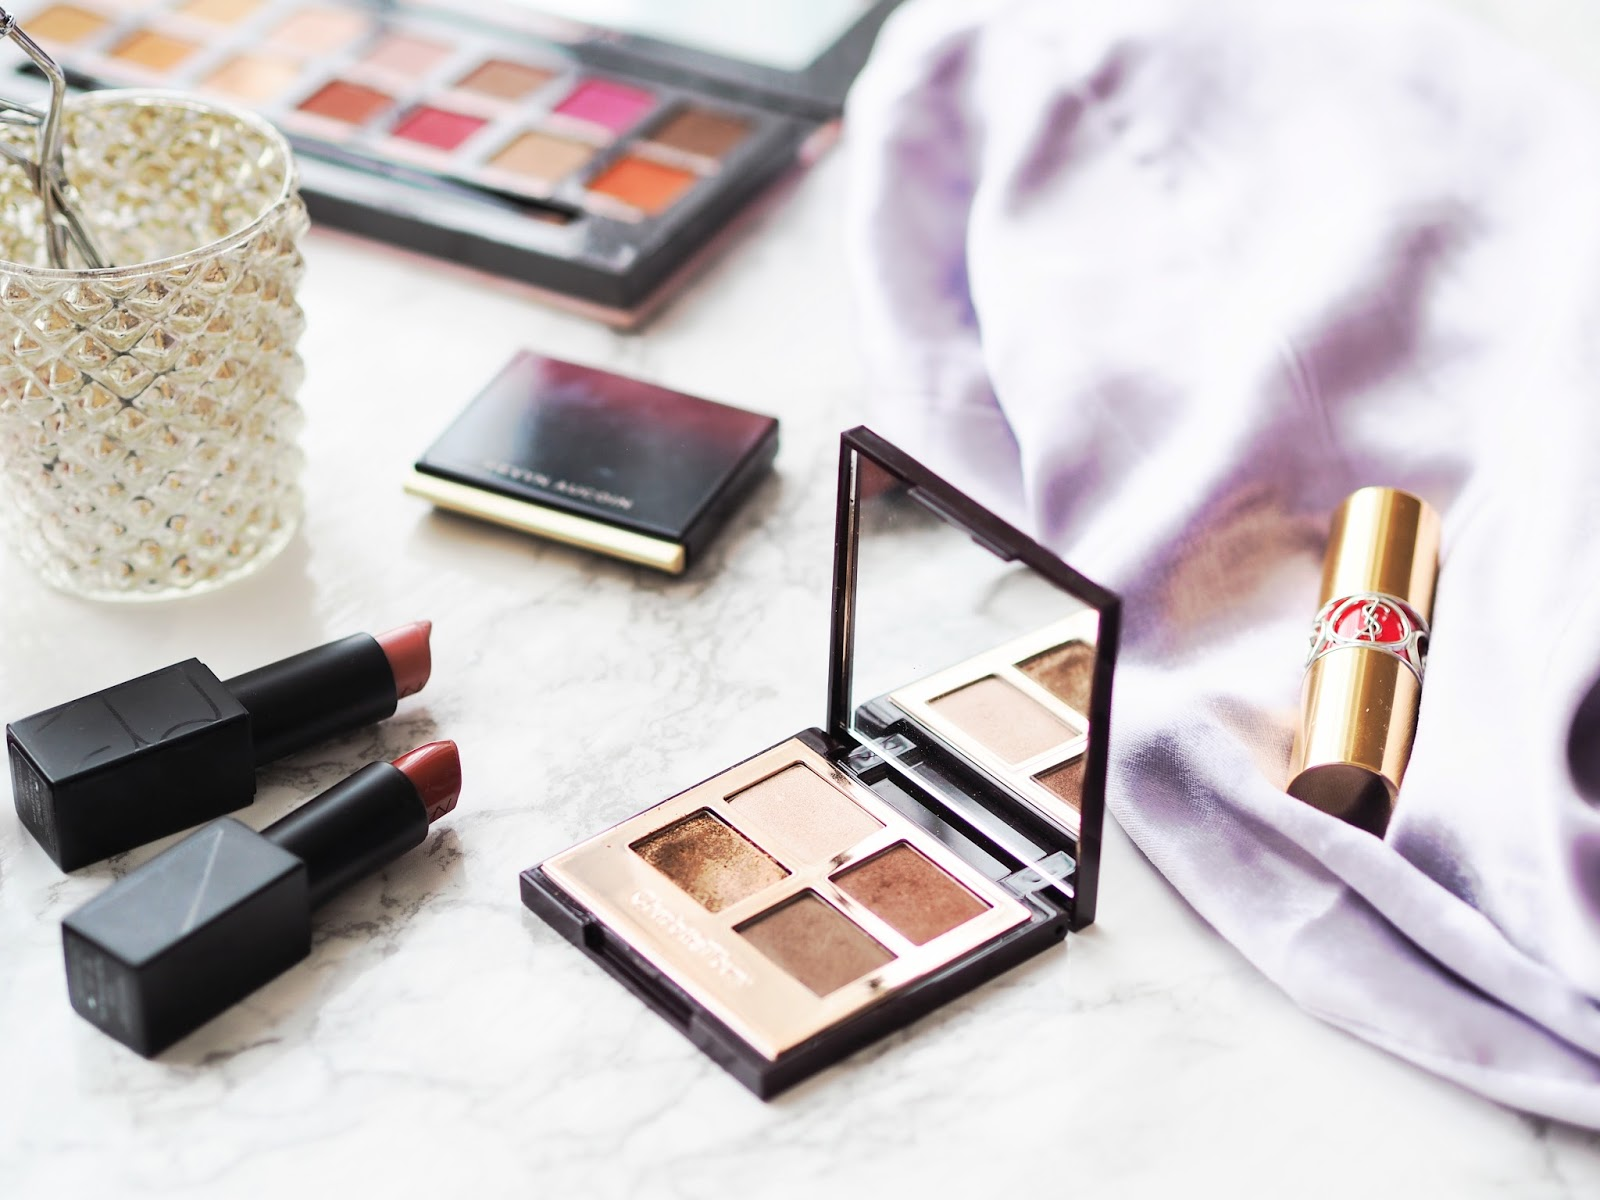 Luxury beauty worth the splurge, best luxury makeup, nars audacious lipstick, ysl volupte lipstick, anastasia modern renaissance palette, charlotte tilbury dolce vita, kevyn aucoin sculpting powder,